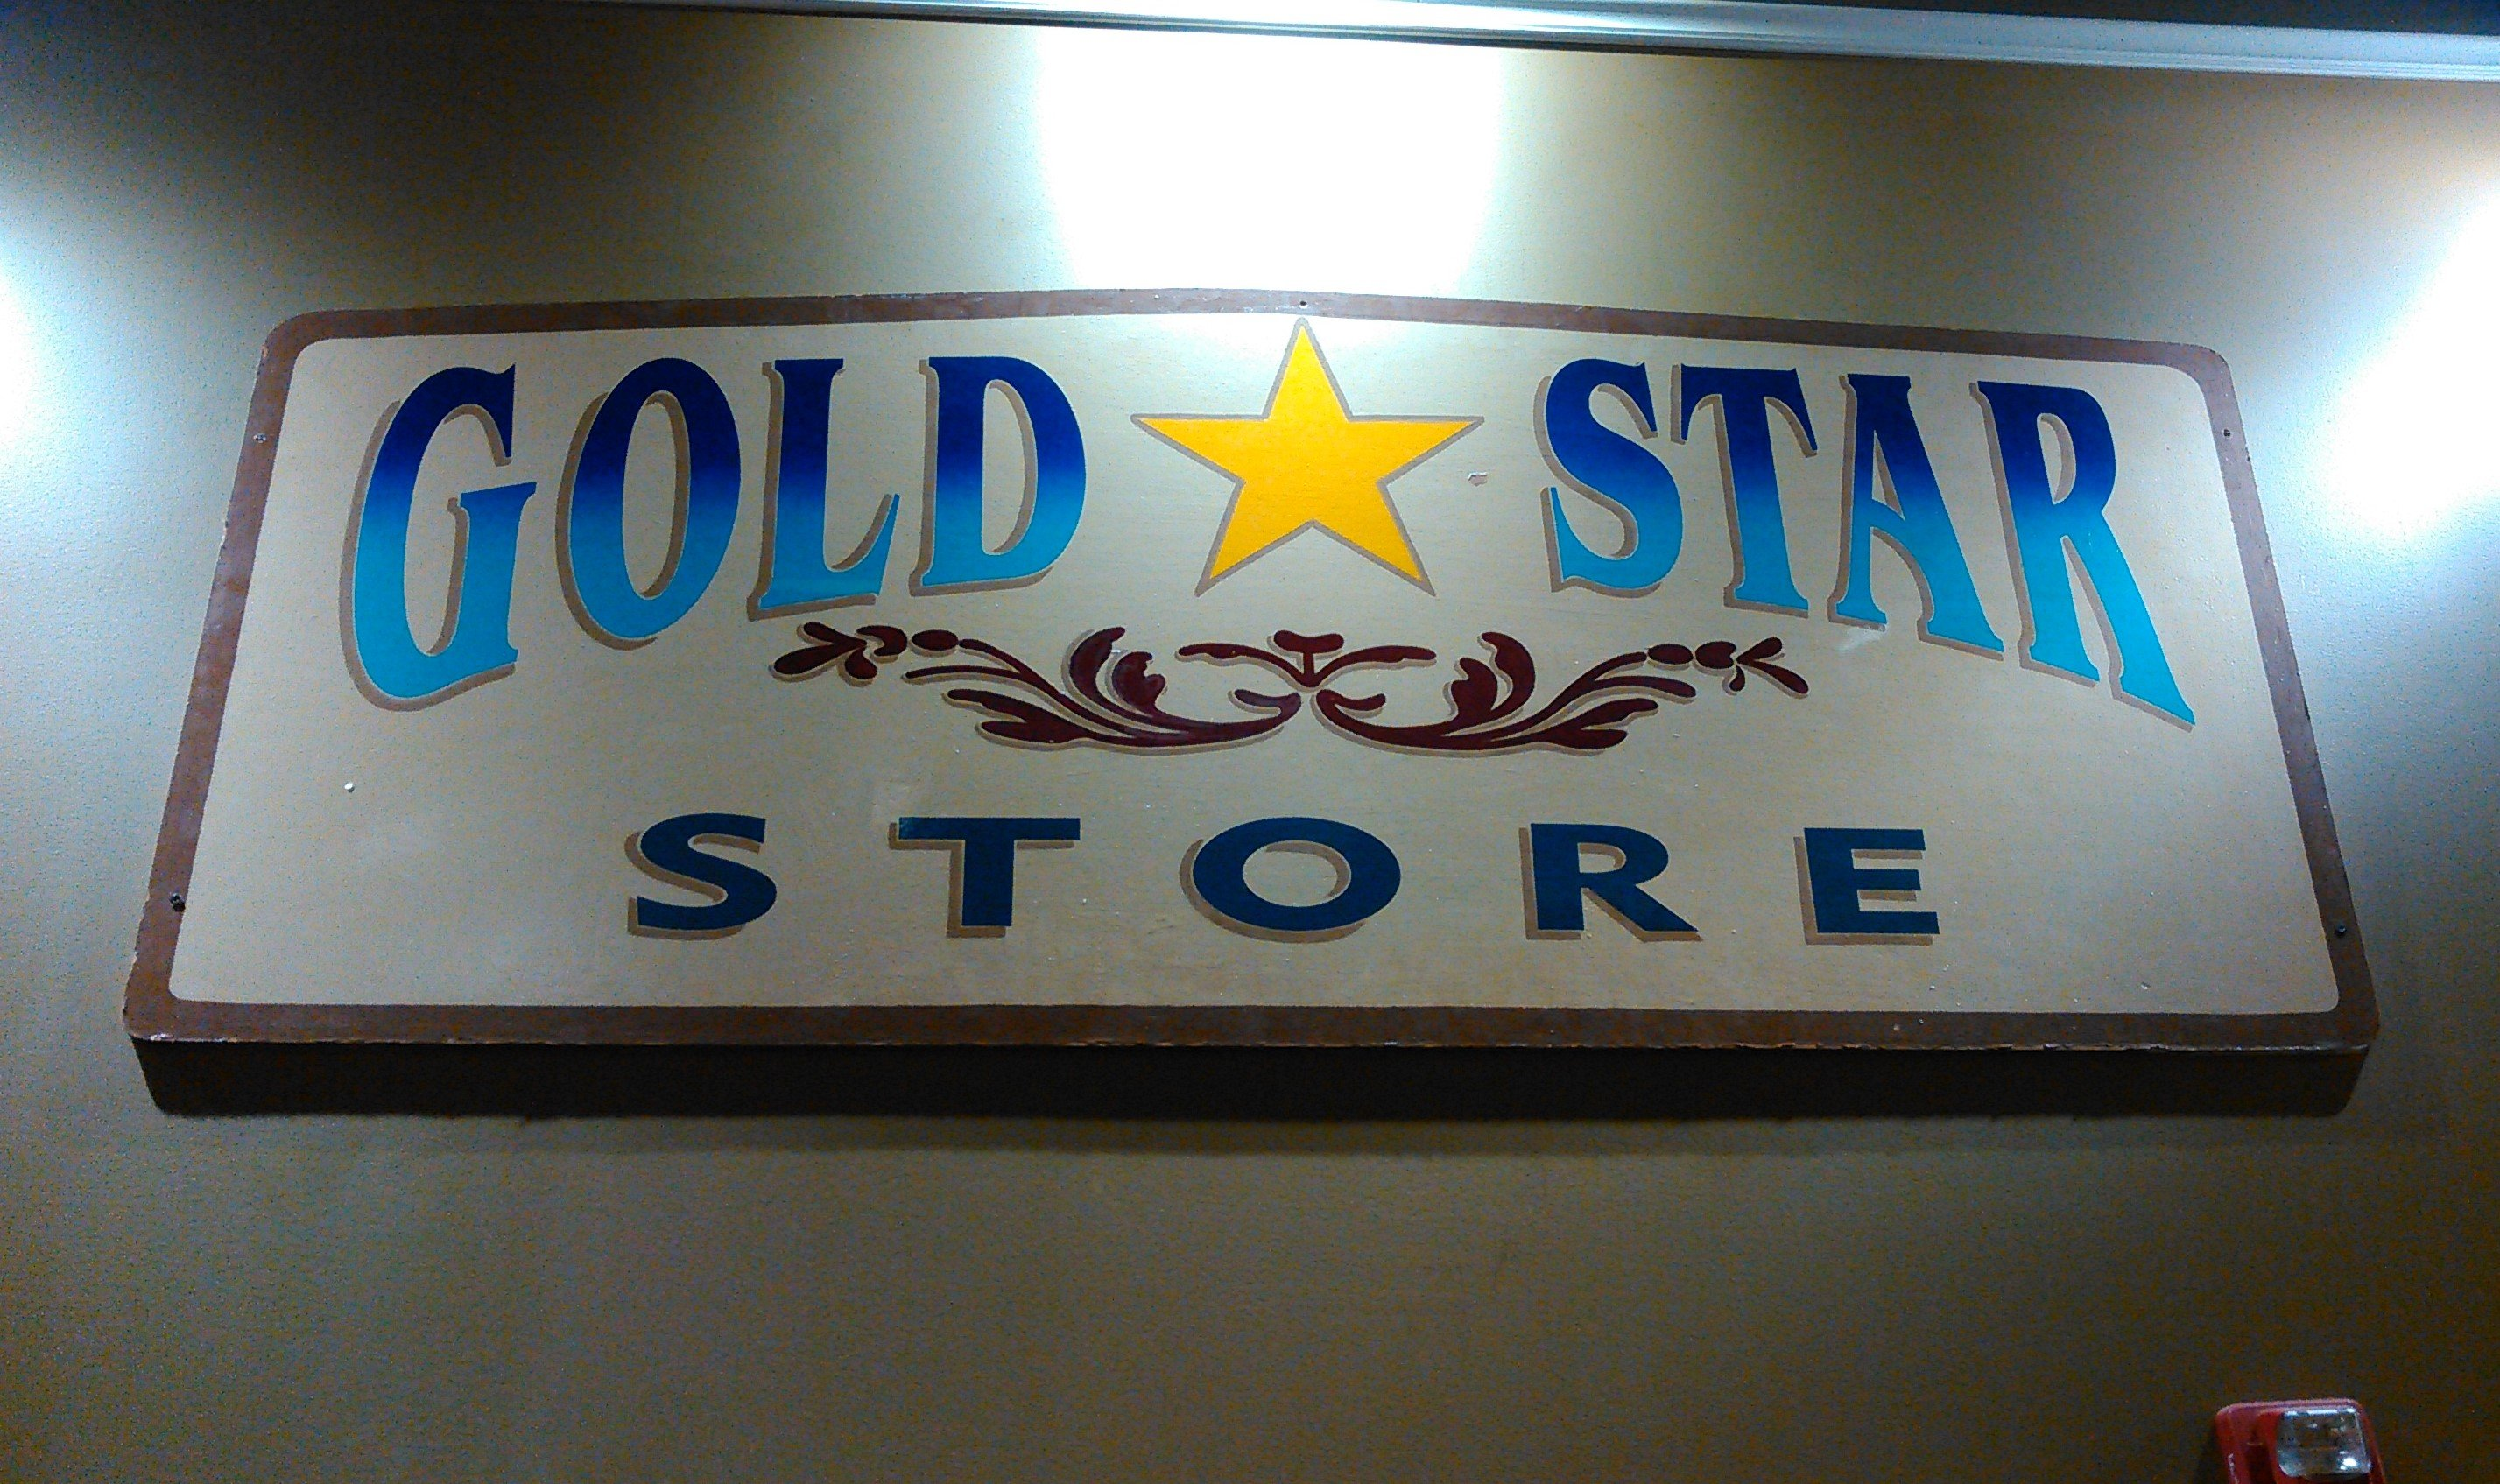 A sign from one of the previous occupants of the space, the Gold Star Store, which sold feed and farming supplies to local residents. Today it is displayed on the wall of Meatheads. Photo by Sofia Biegeleisen